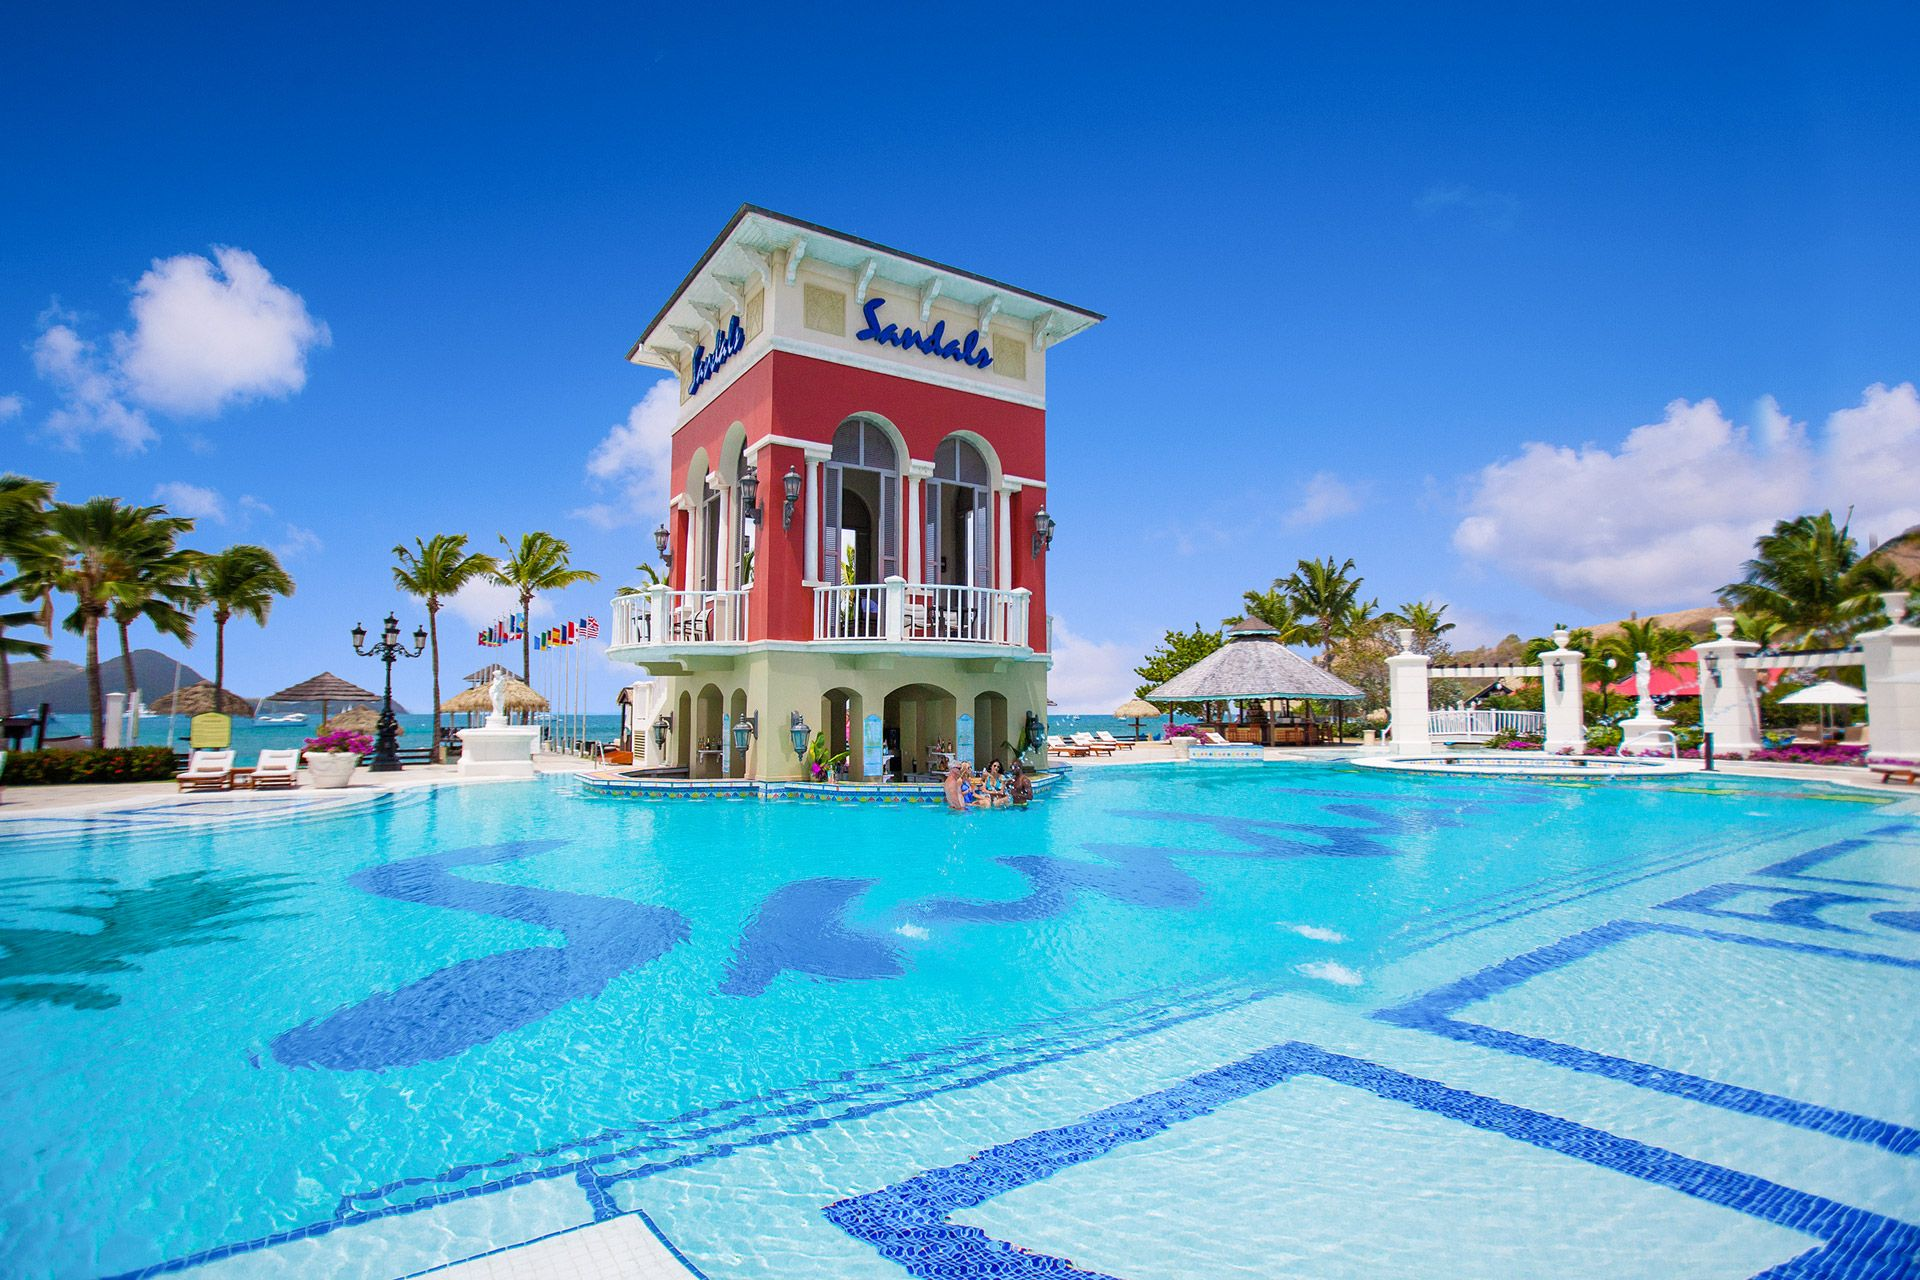 sandals grande st lucian swim up bar